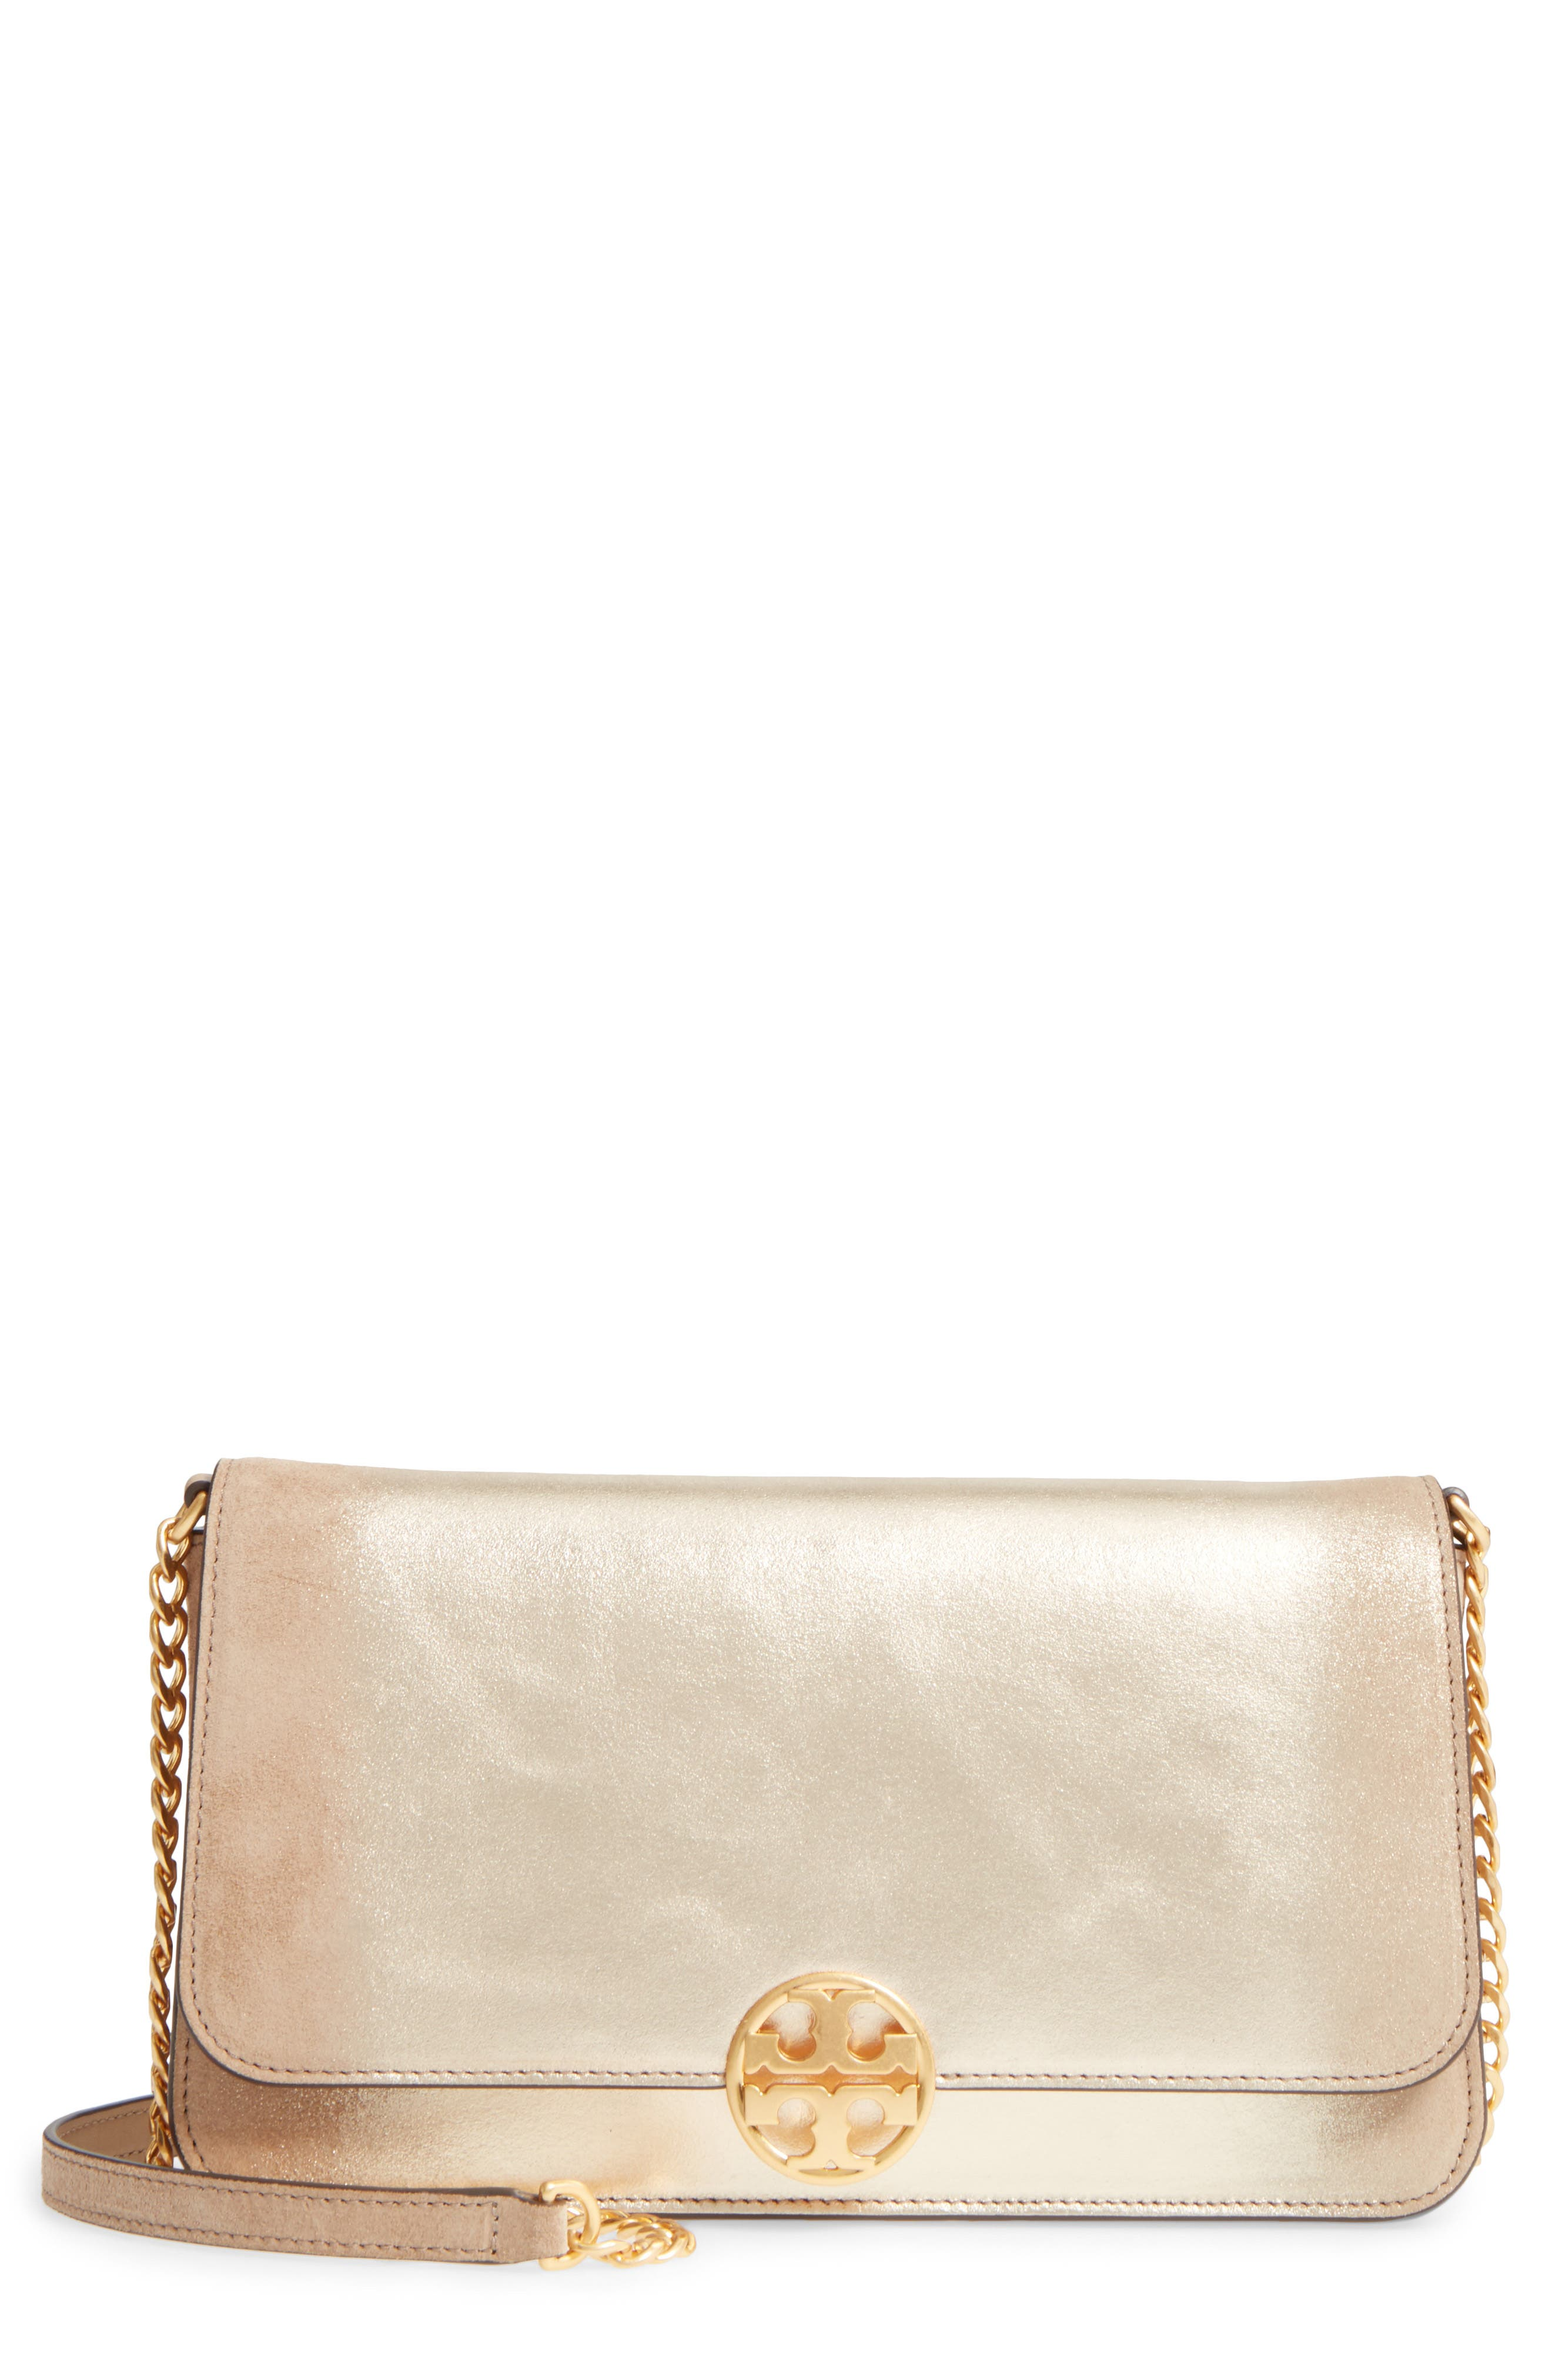 Chelsea Convertible Metallic Leather Clutch,                         Main,                         color, 710